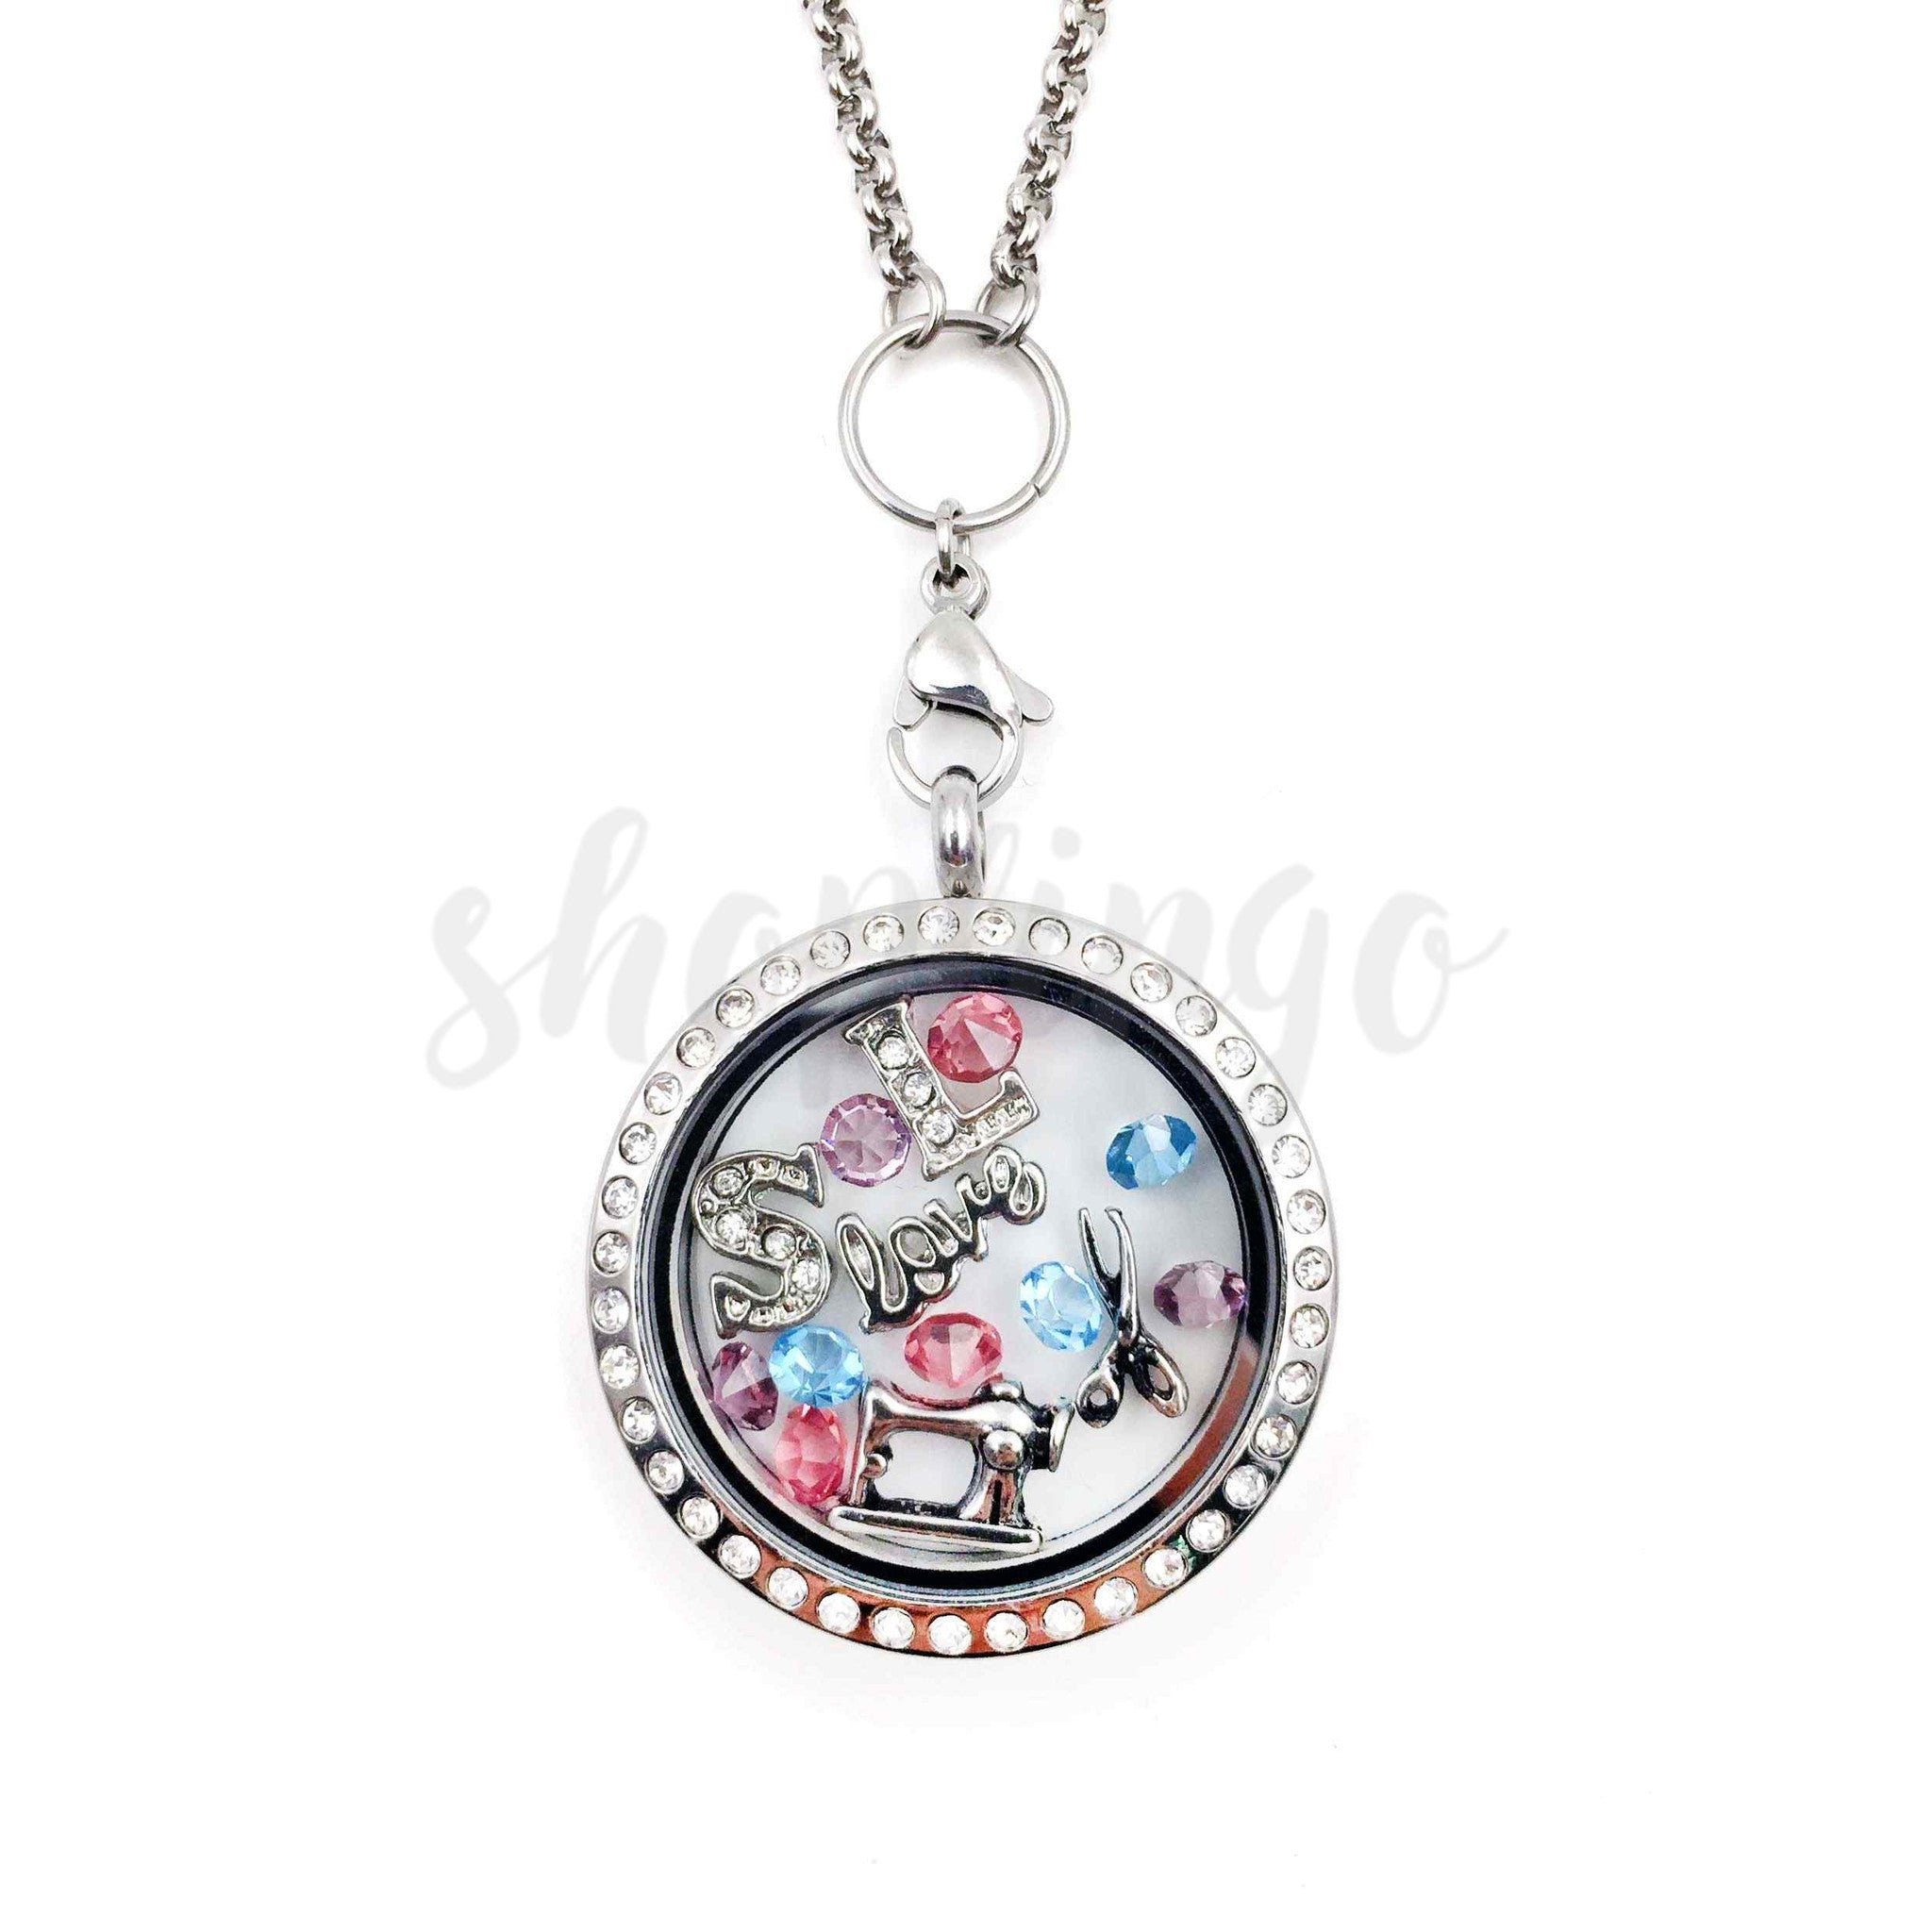 Keep Calm & Sew On Locket - One Cool Gift  - 1